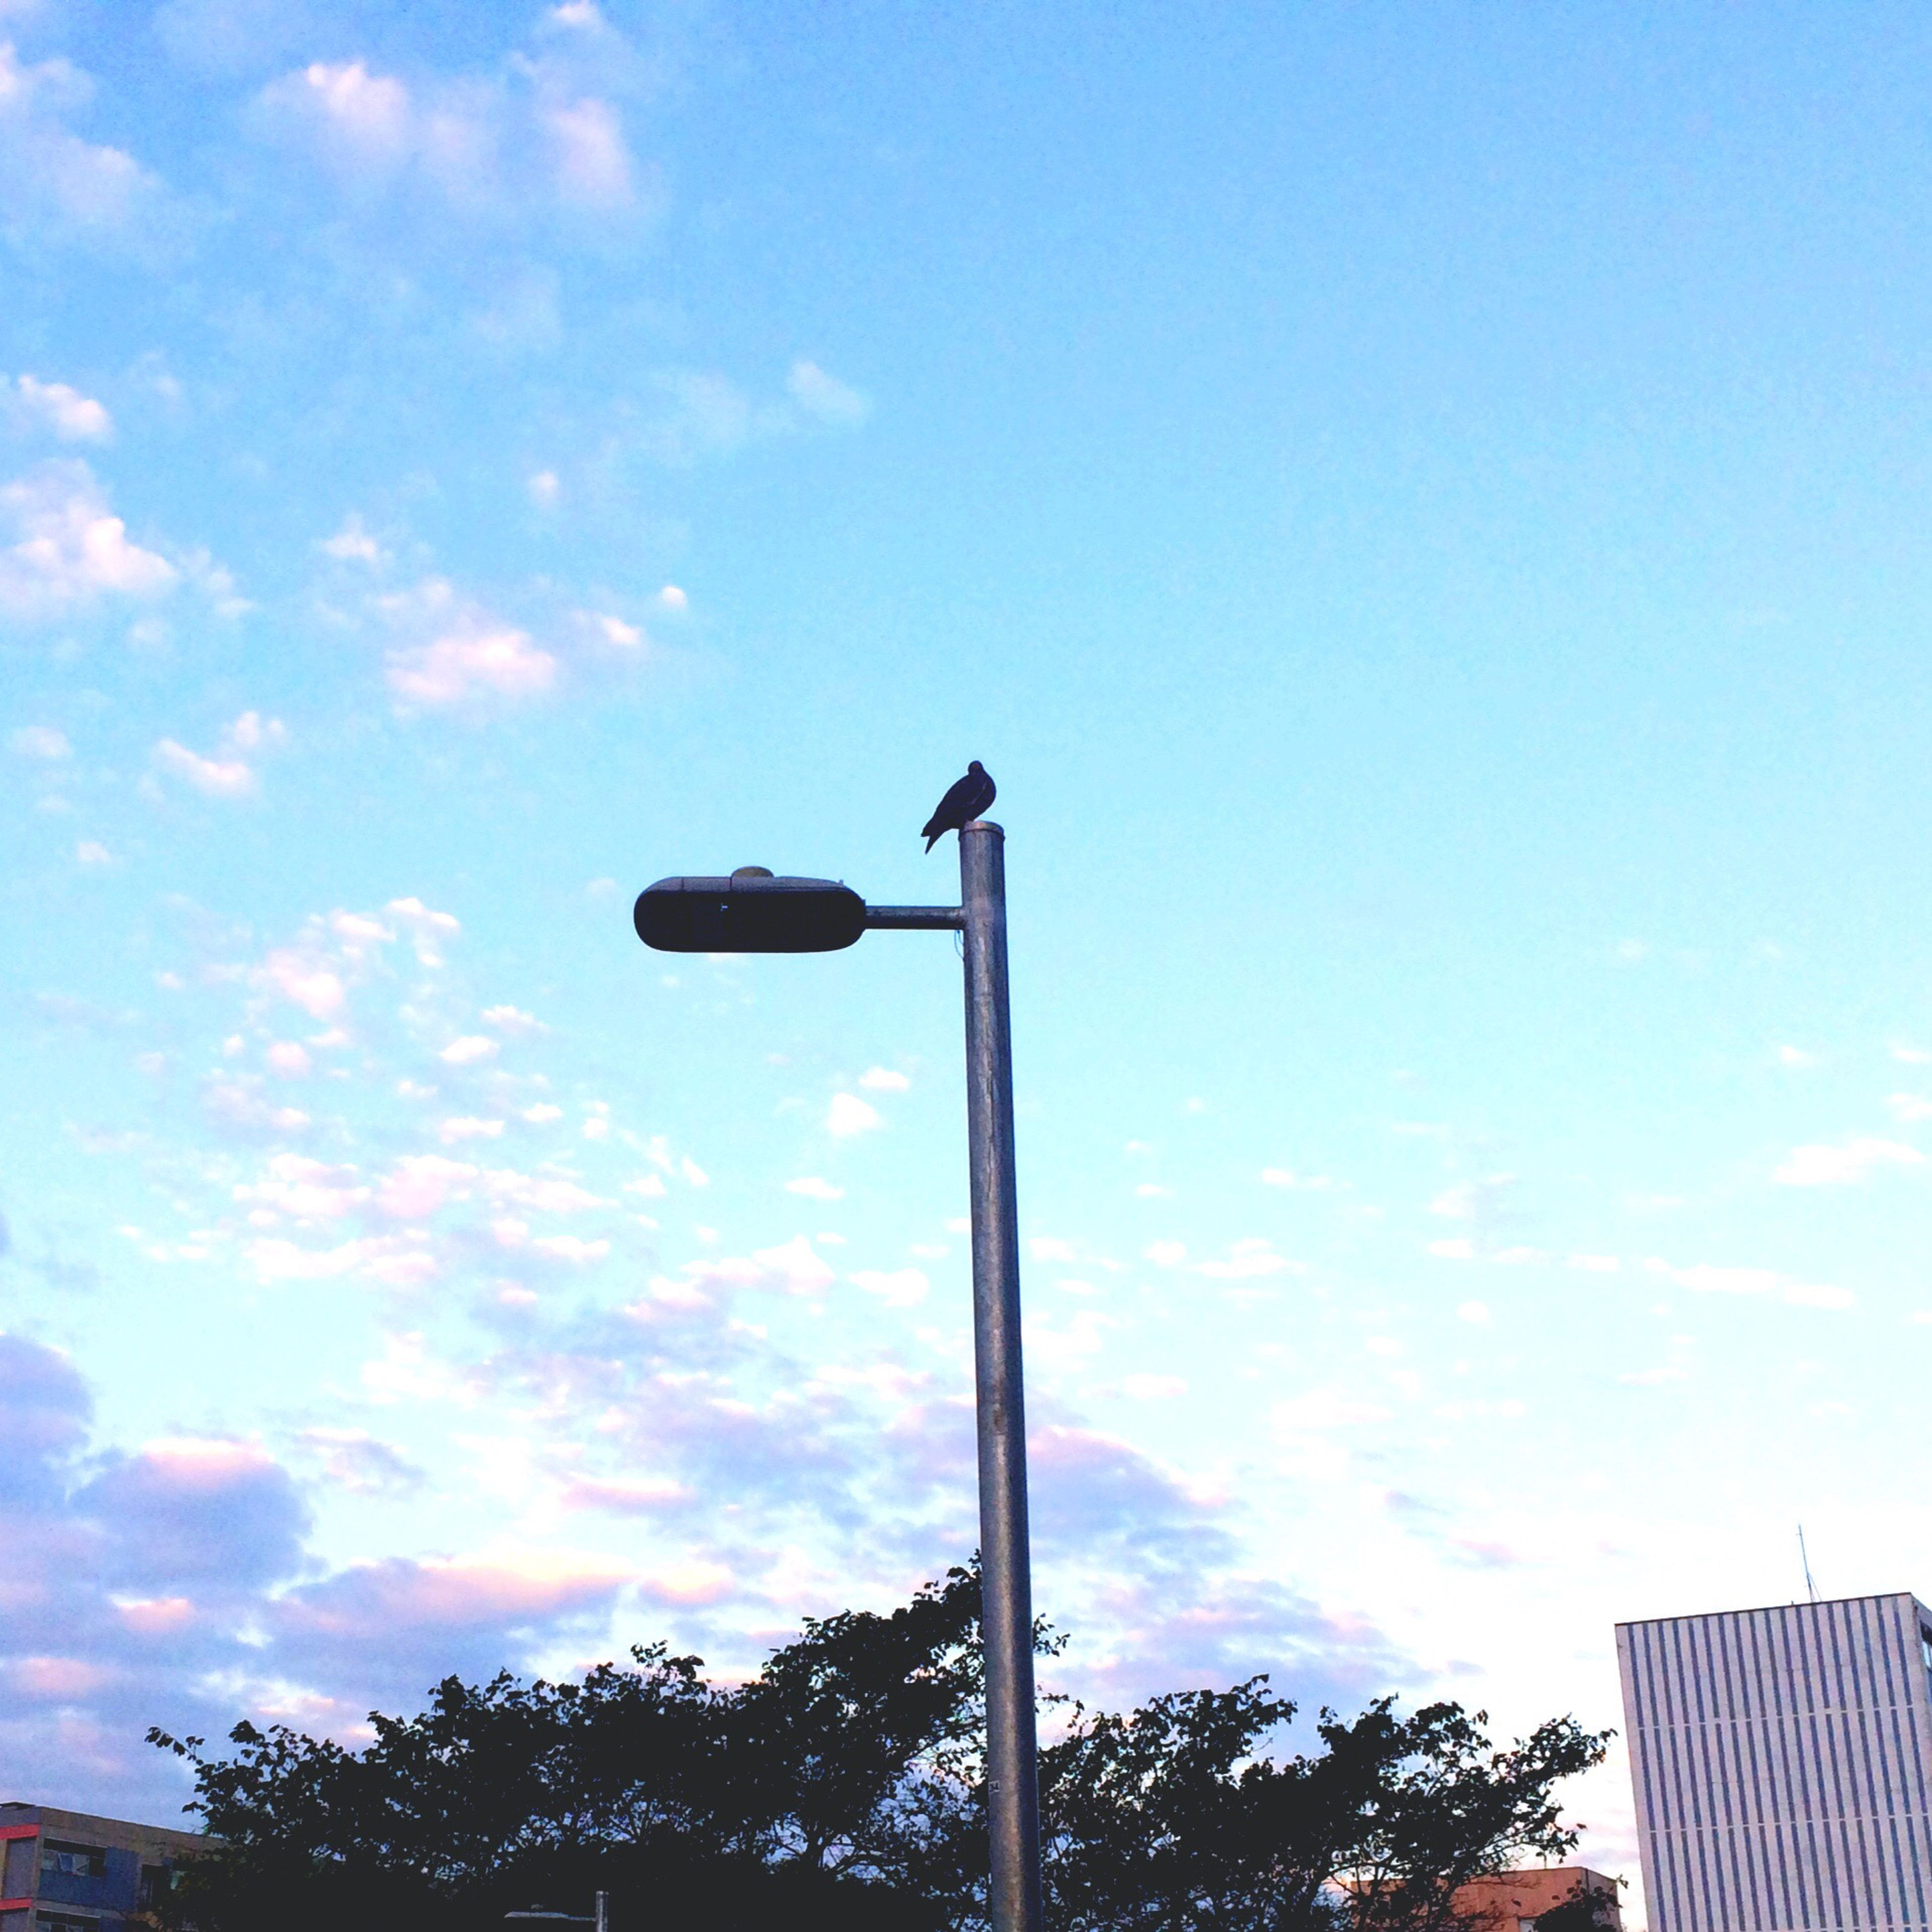 low angle view, sky, bird, animals in the wild, street light, day, no people, flag, animal themes, outdoors, tree, perching, nature